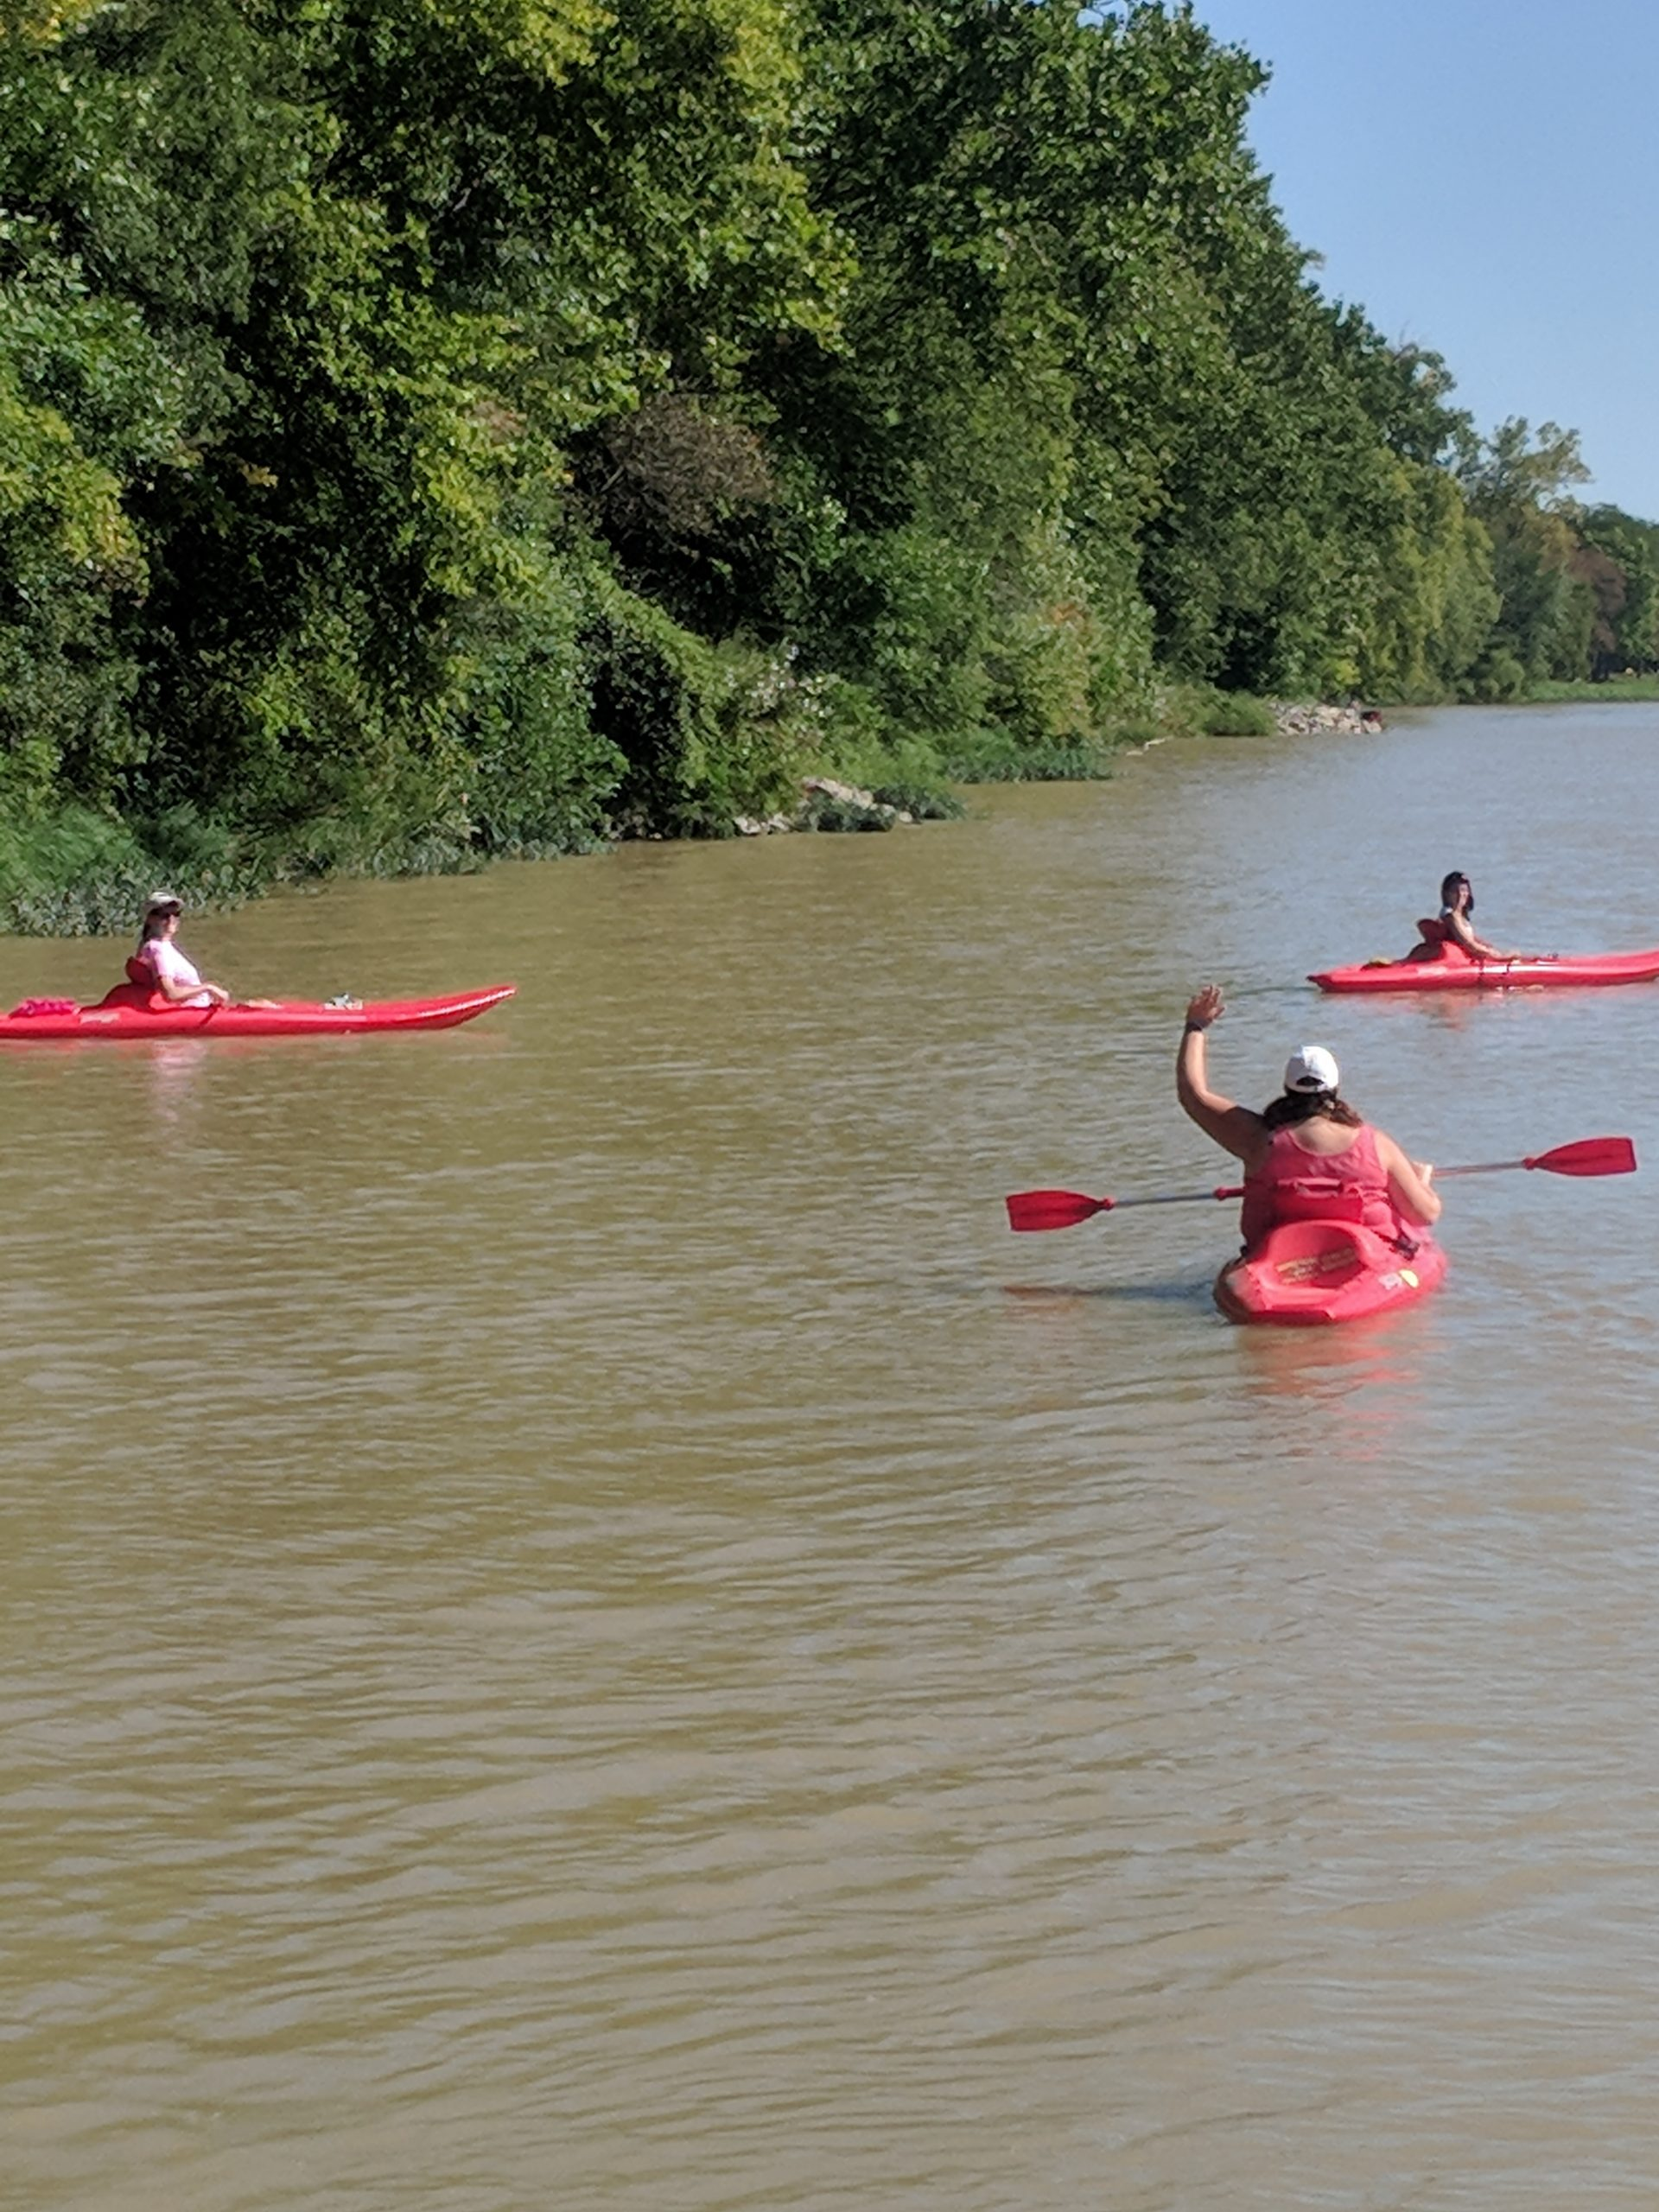 Maumee river Conditions-30 August 2019